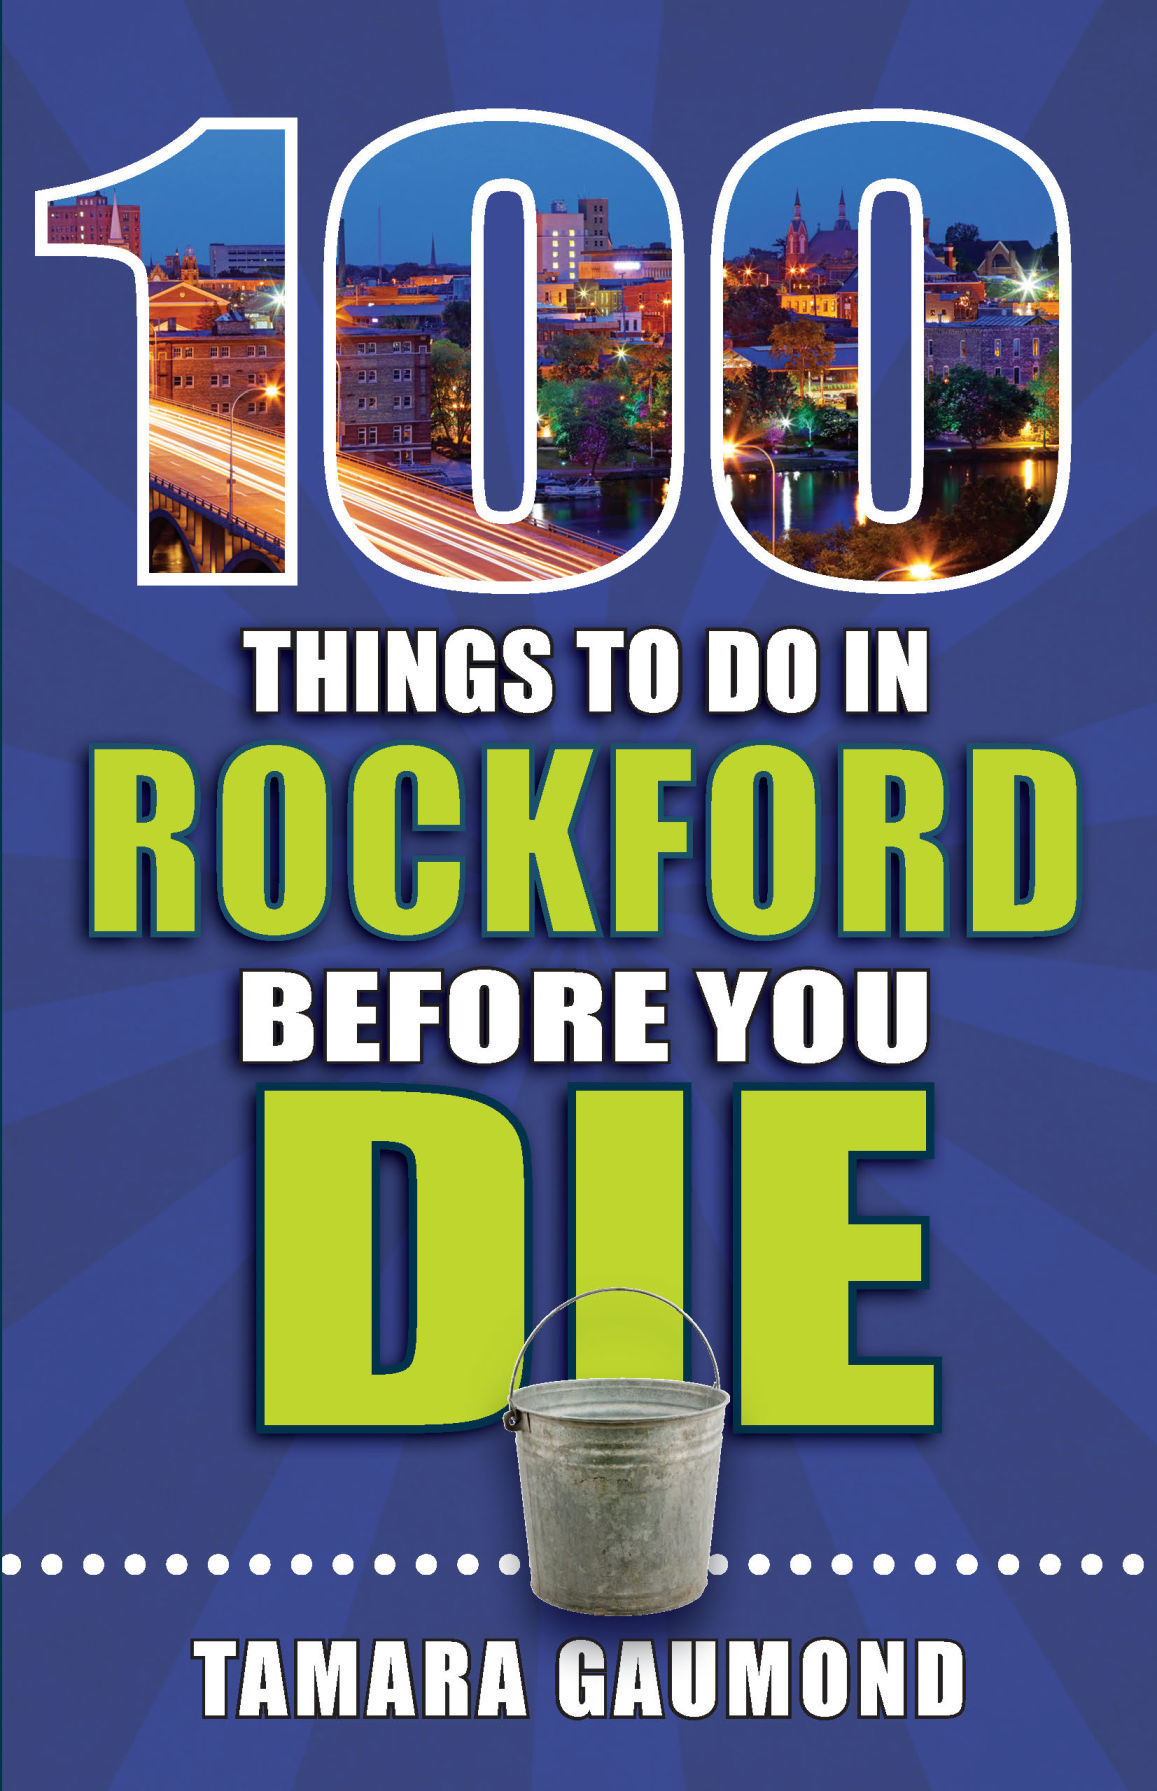 100 Things to do in Rockford Before You Die cover